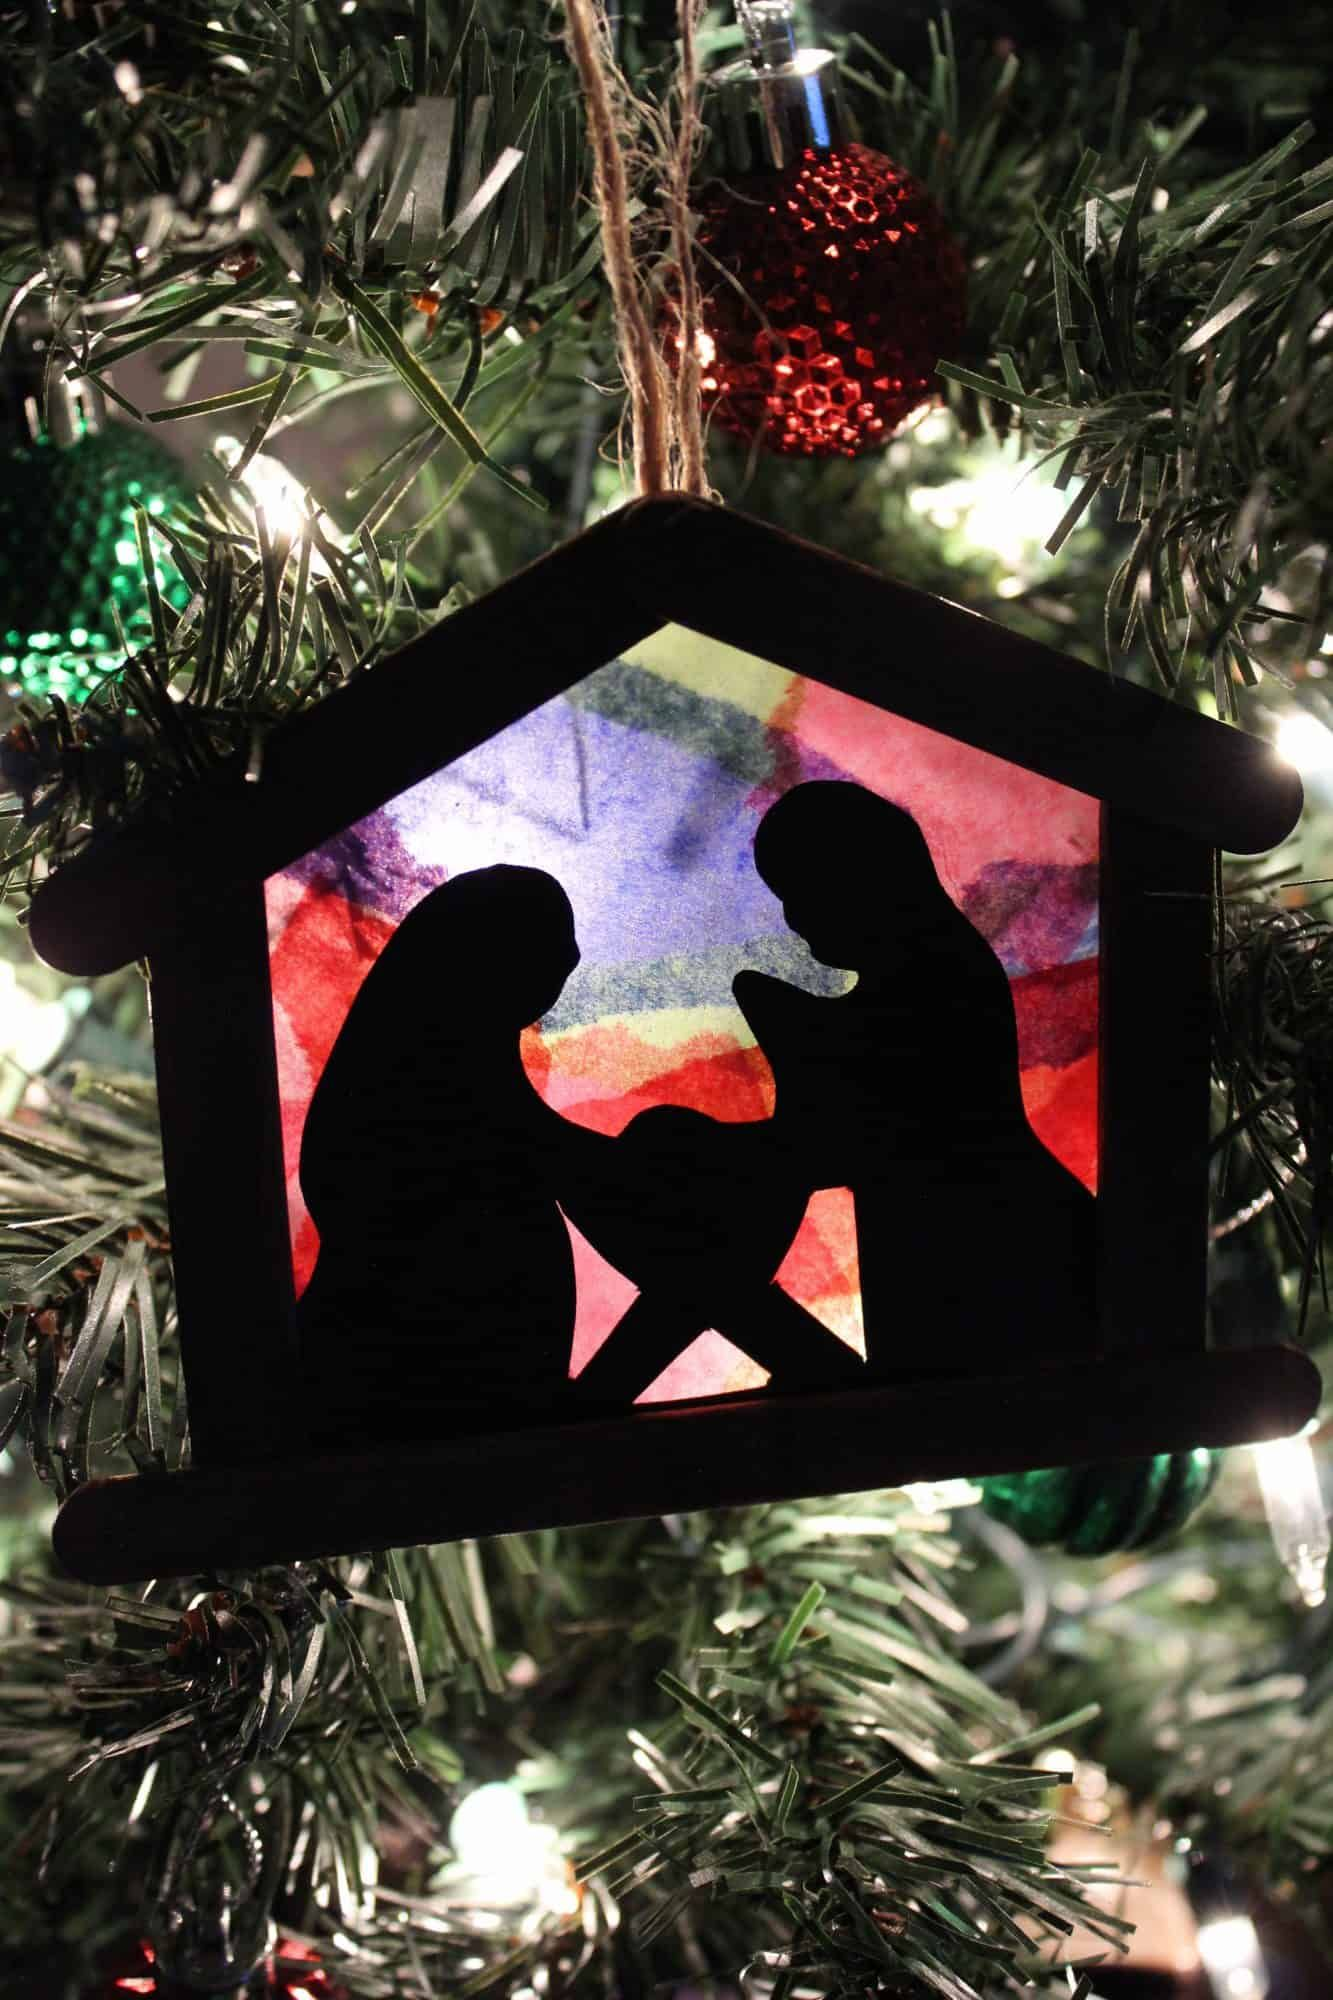 Diy Stained Glass Nativity Ornament Diy Christmas Tree Ornaments Nativity Ornaments Christmas Mosaics